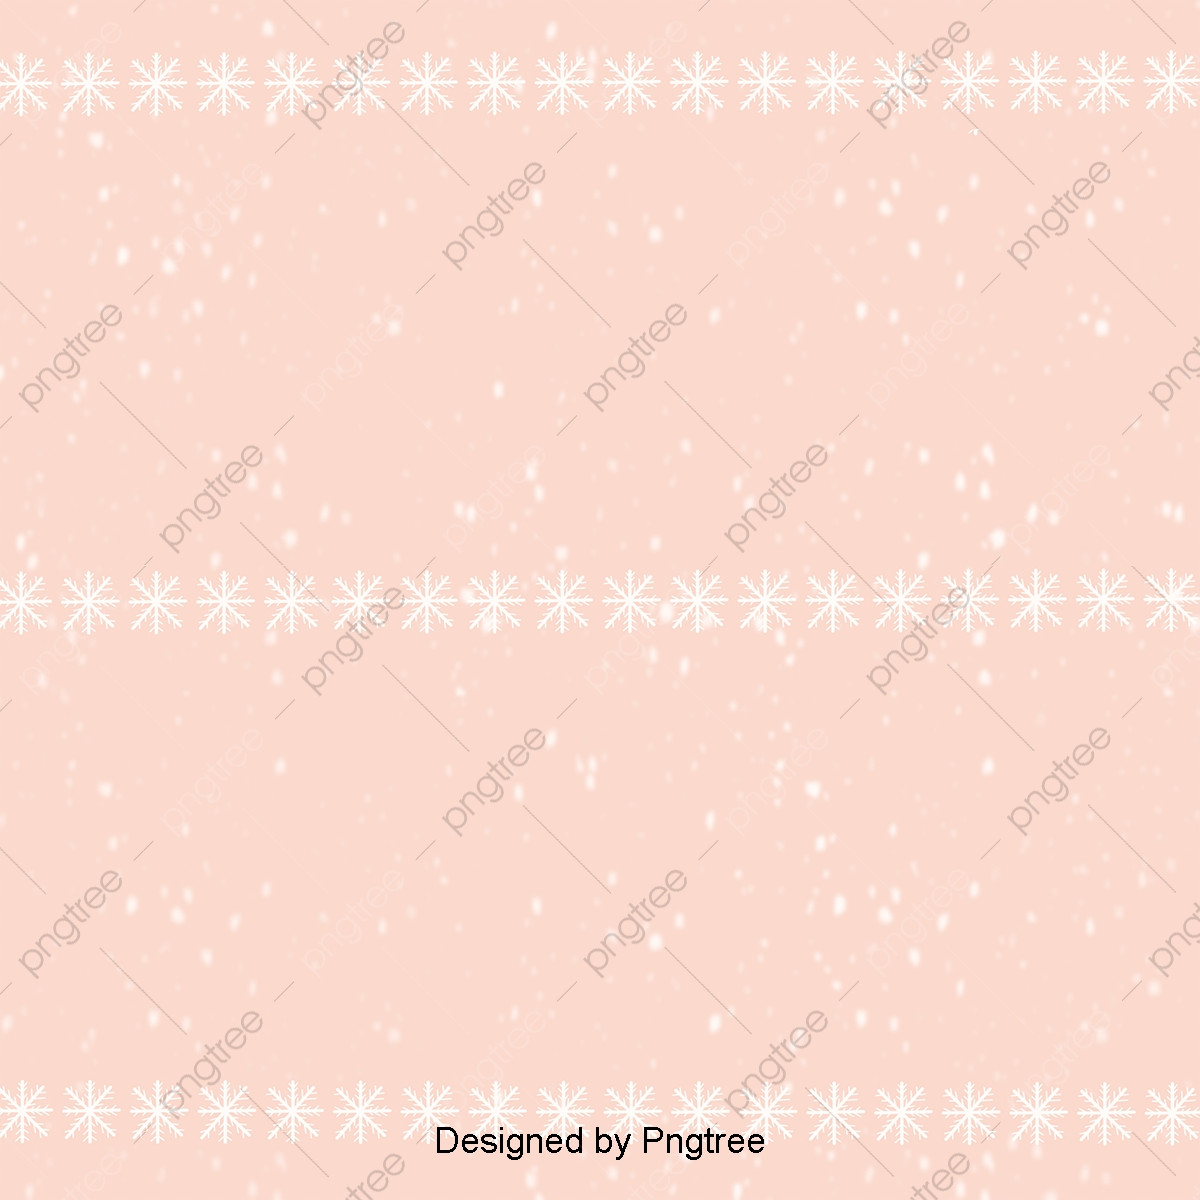 Pink Cartoon Simple Christmas Background, In The Winter